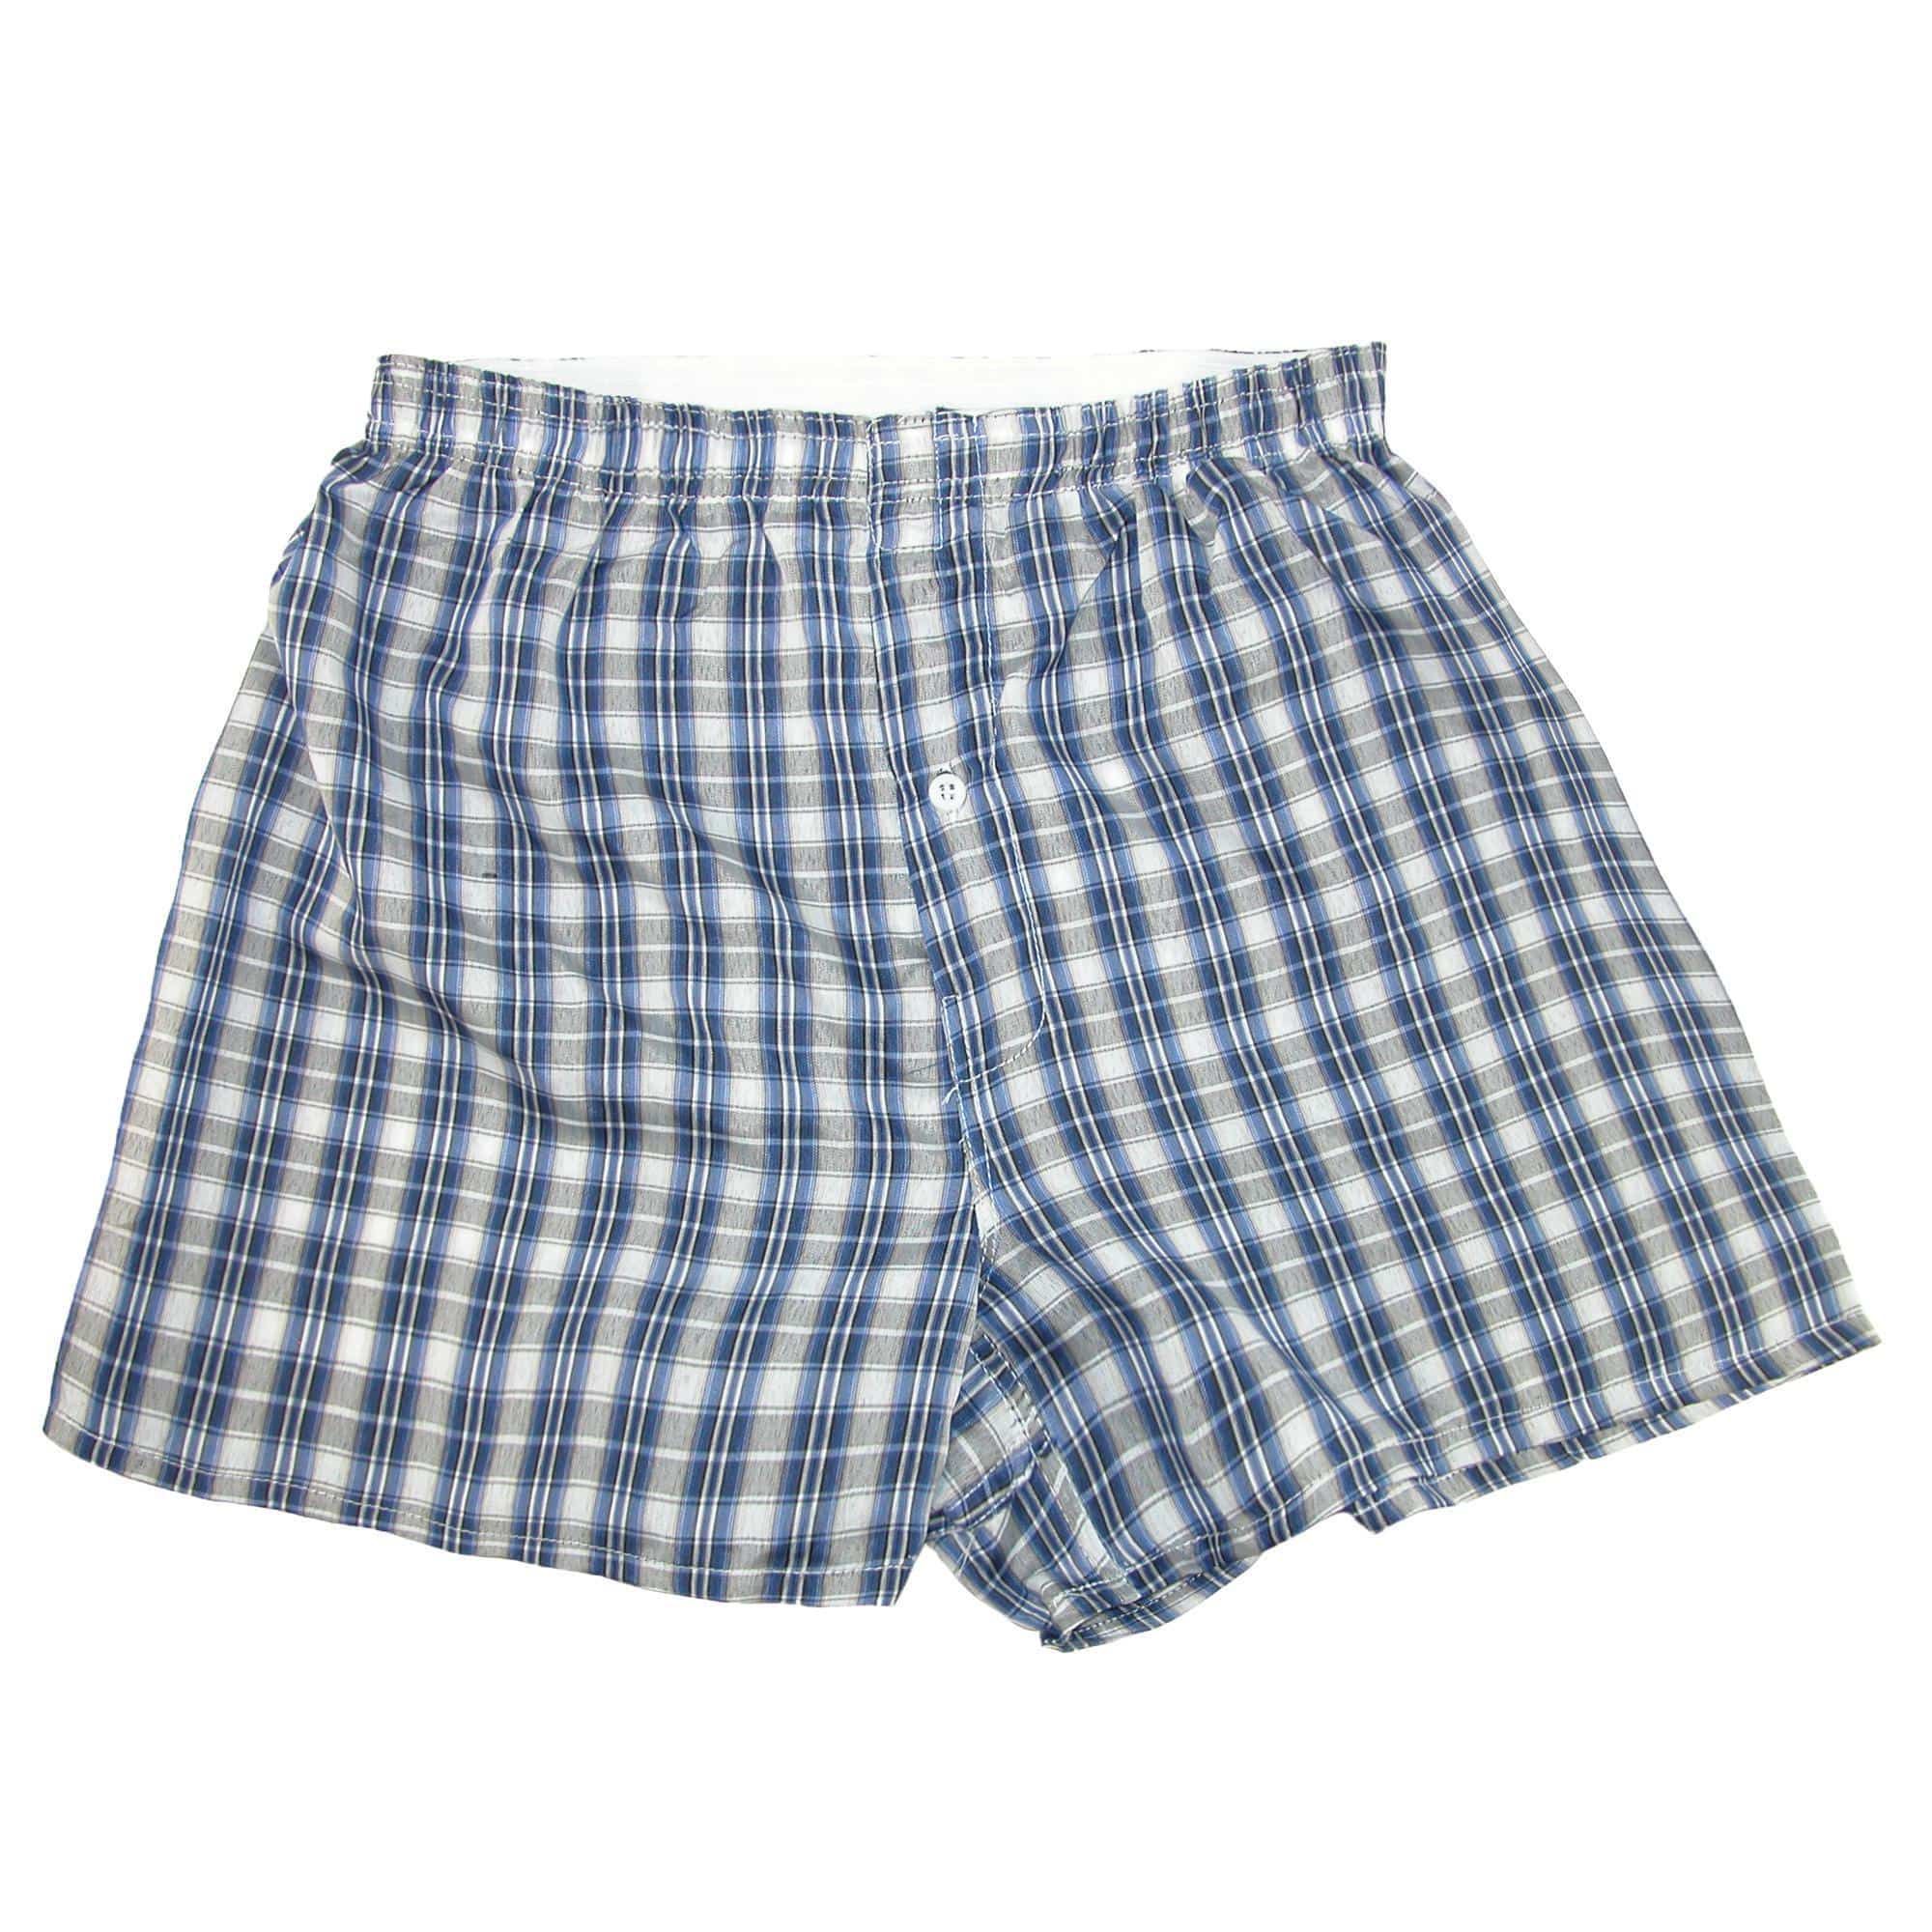 CTM  Men's Big and Tall Madras Plaid Boxer Shorts (Pack of 3)